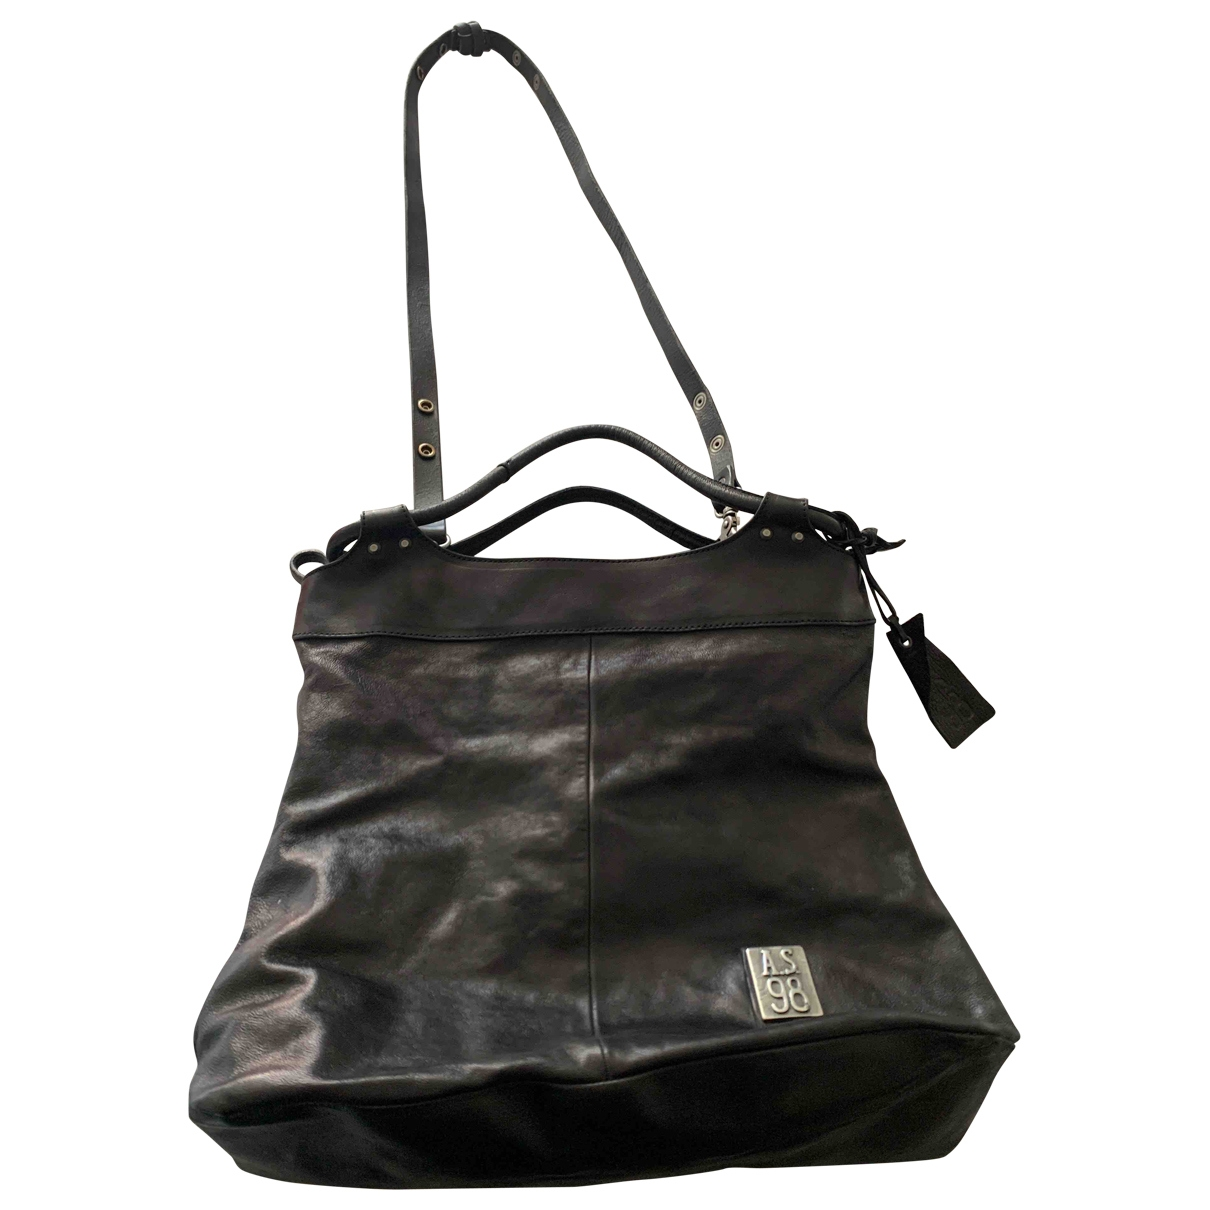 A.s.98 \N Black Leather handbag for Women \N